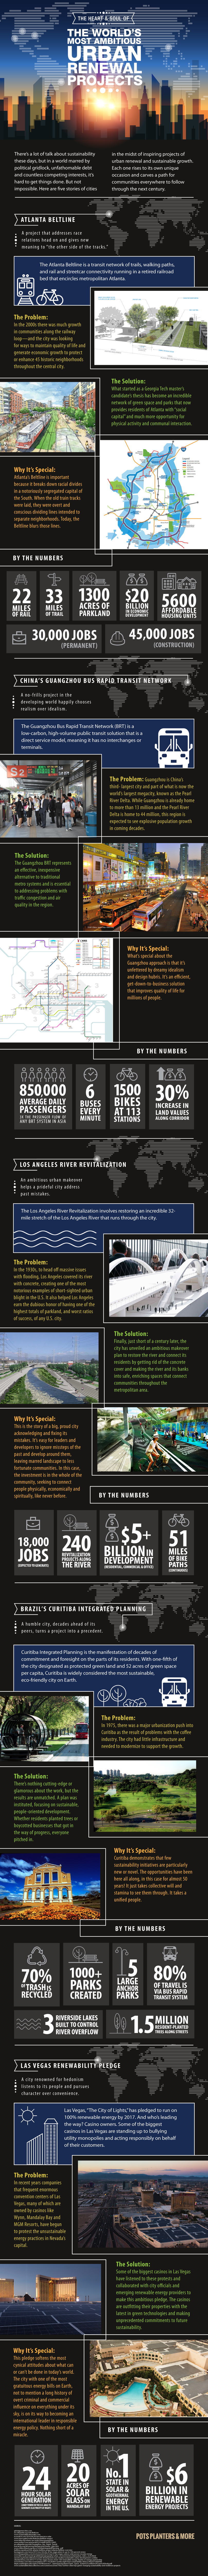 infographic of urban renewal projects